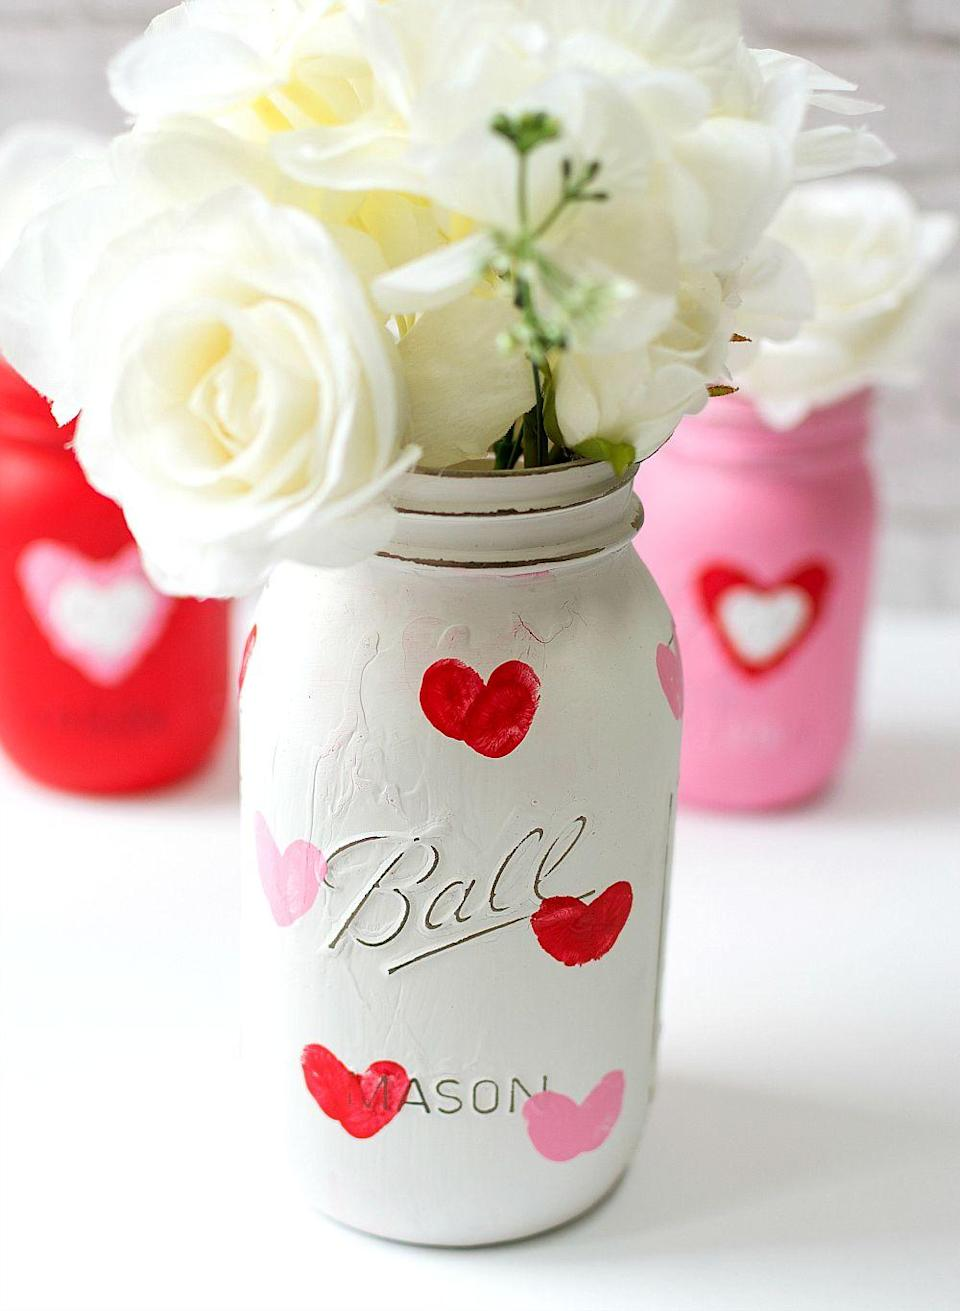 """<p>Use thumbprint hearts to add whimsy and color to mason jars, and turn them into cheerful vases for those holiday bouquets. Sand with sandpaper for a rustic look before sealing.</p><p><em><a href=""""https://www.itallstartedwithpaint.com/valentine-kid-craft-thumbprint-heart-jars/?"""" rel=""""nofollow noopener"""" target=""""_blank"""" data-ylk=""""slk:It All Started With Paint »"""" class=""""link rapid-noclick-resp""""><em>It All Started With Paint »</em></a></em></p>"""